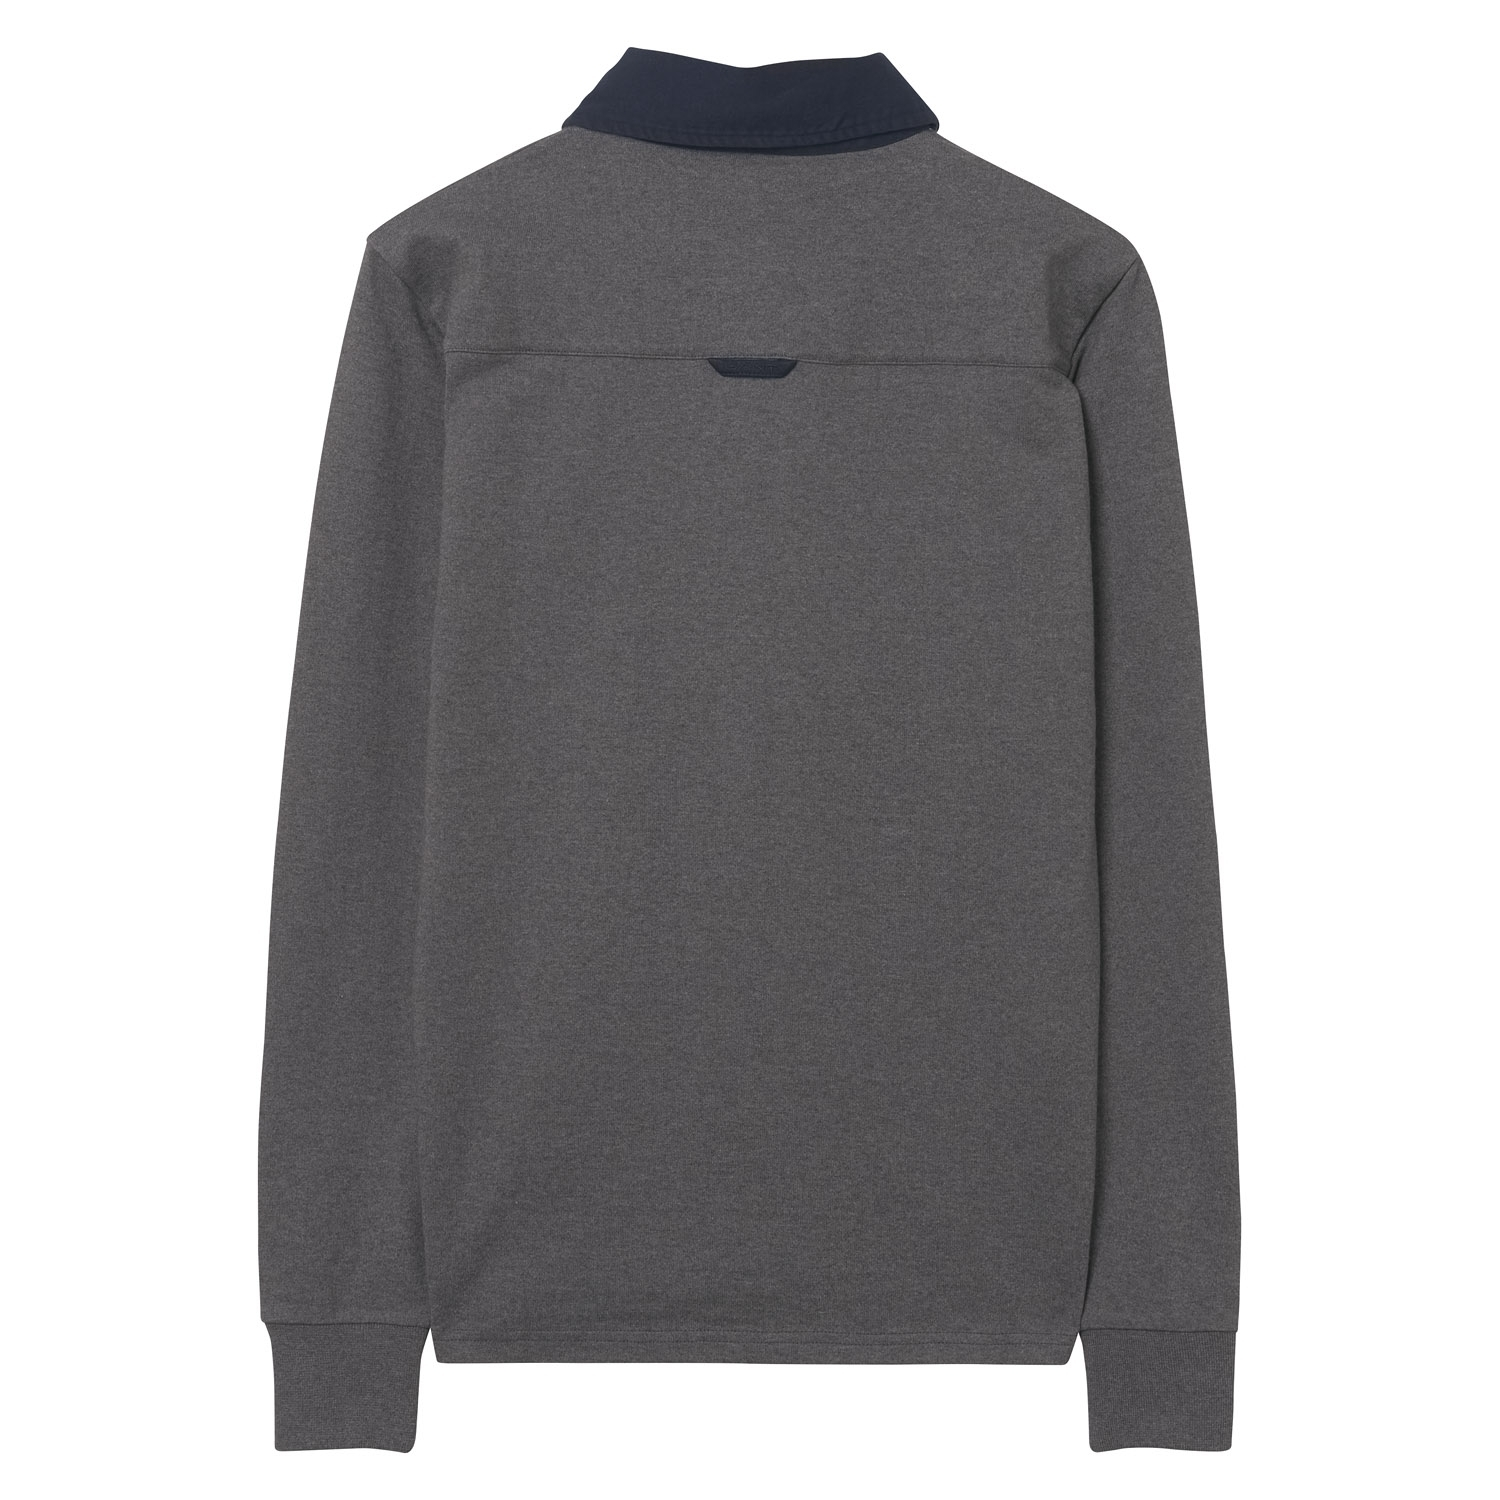 Gant Pullover Sweater THE ORIGINAL HEAVY RUGGER 2005020 CHARCOAL MELANGE SH18-GX1